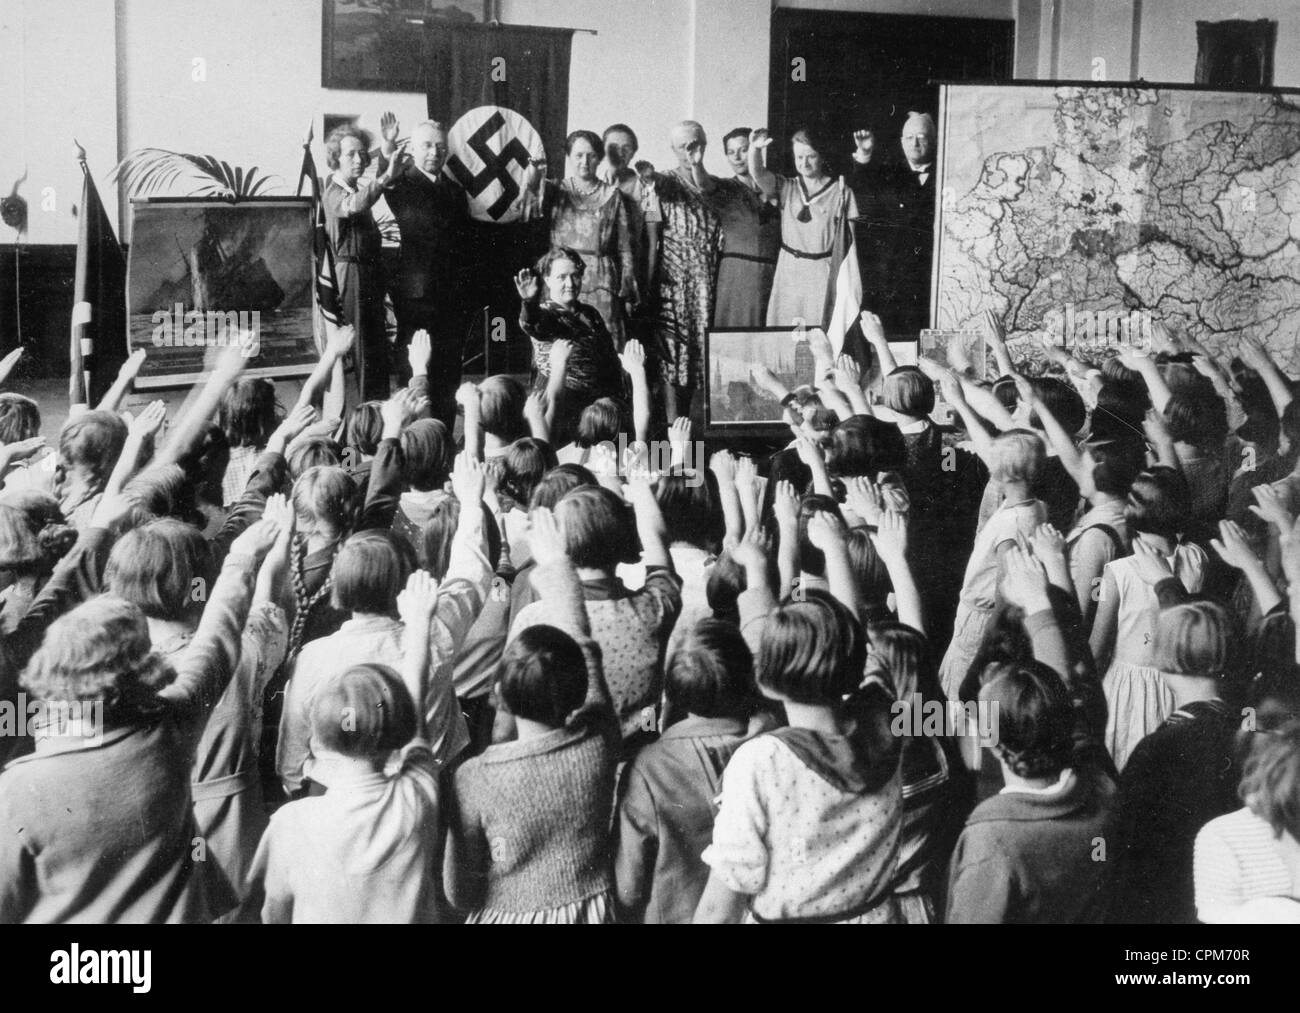 Nazi ceremony in a school, 1934 - Stock Image